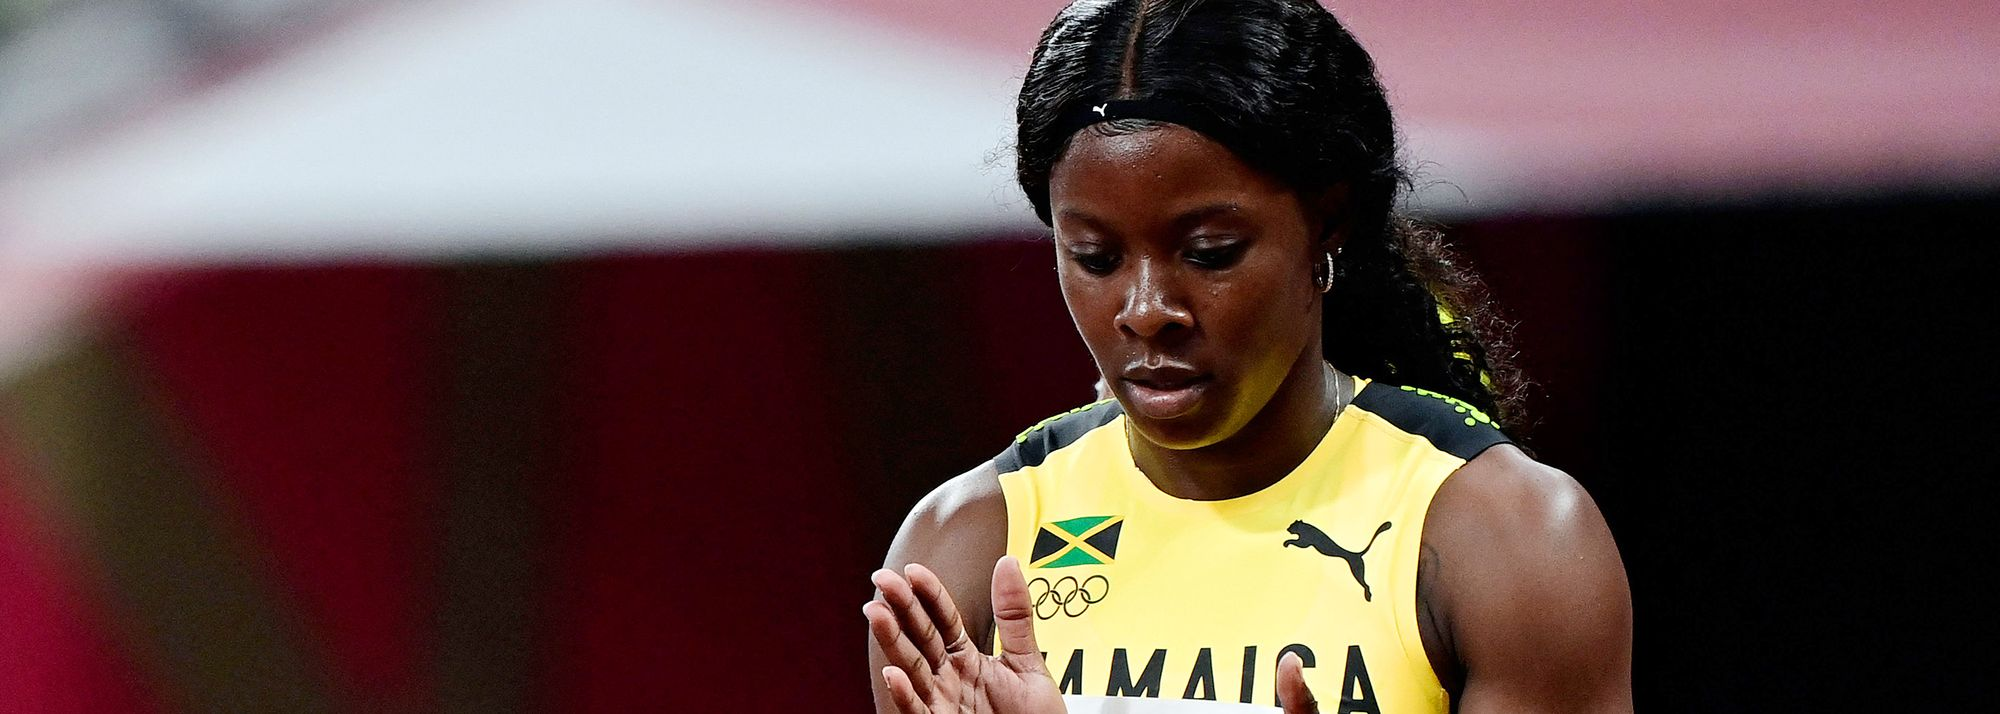 One of the most remarkable Jamaican sprinting success stories from 2021